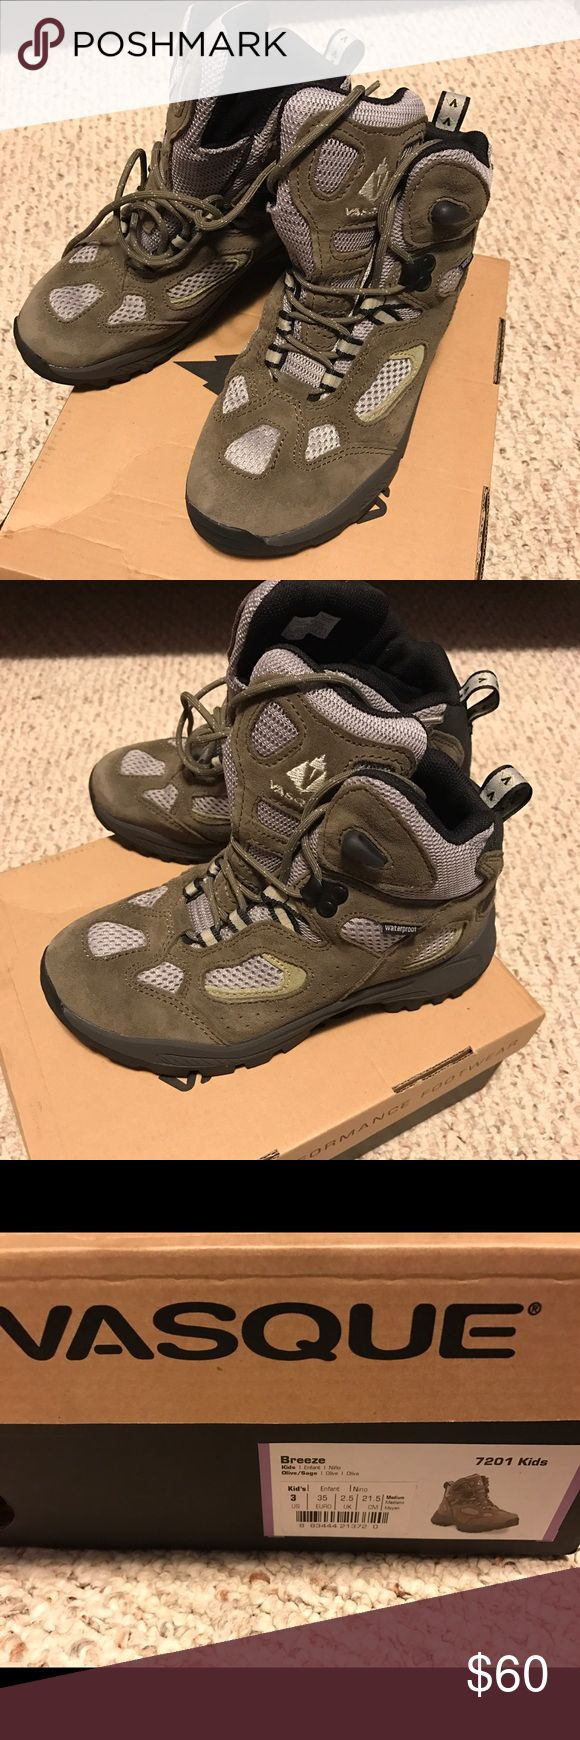 Brand New Boys Hiking Boots Brand new and never used hiking boots. Vasque Shoes Boots